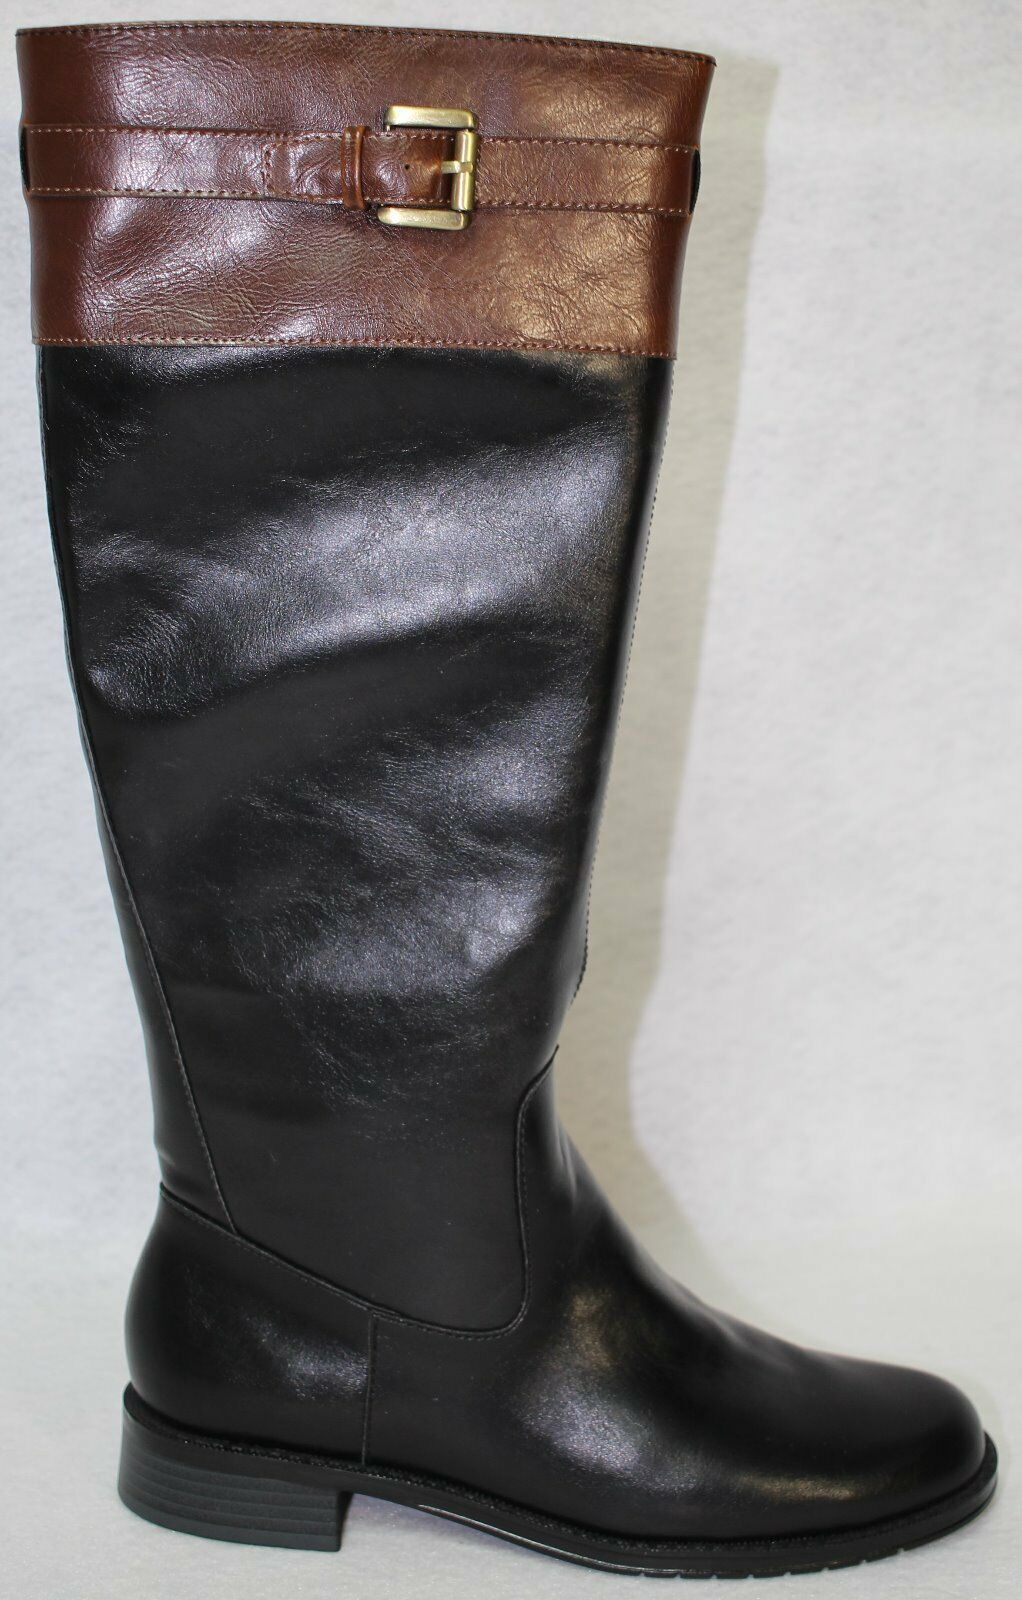 A2 By Aerosoles New High ride Noir Pour Femme Chaussures Taille 7.5 m Bottes PDSF  100.00